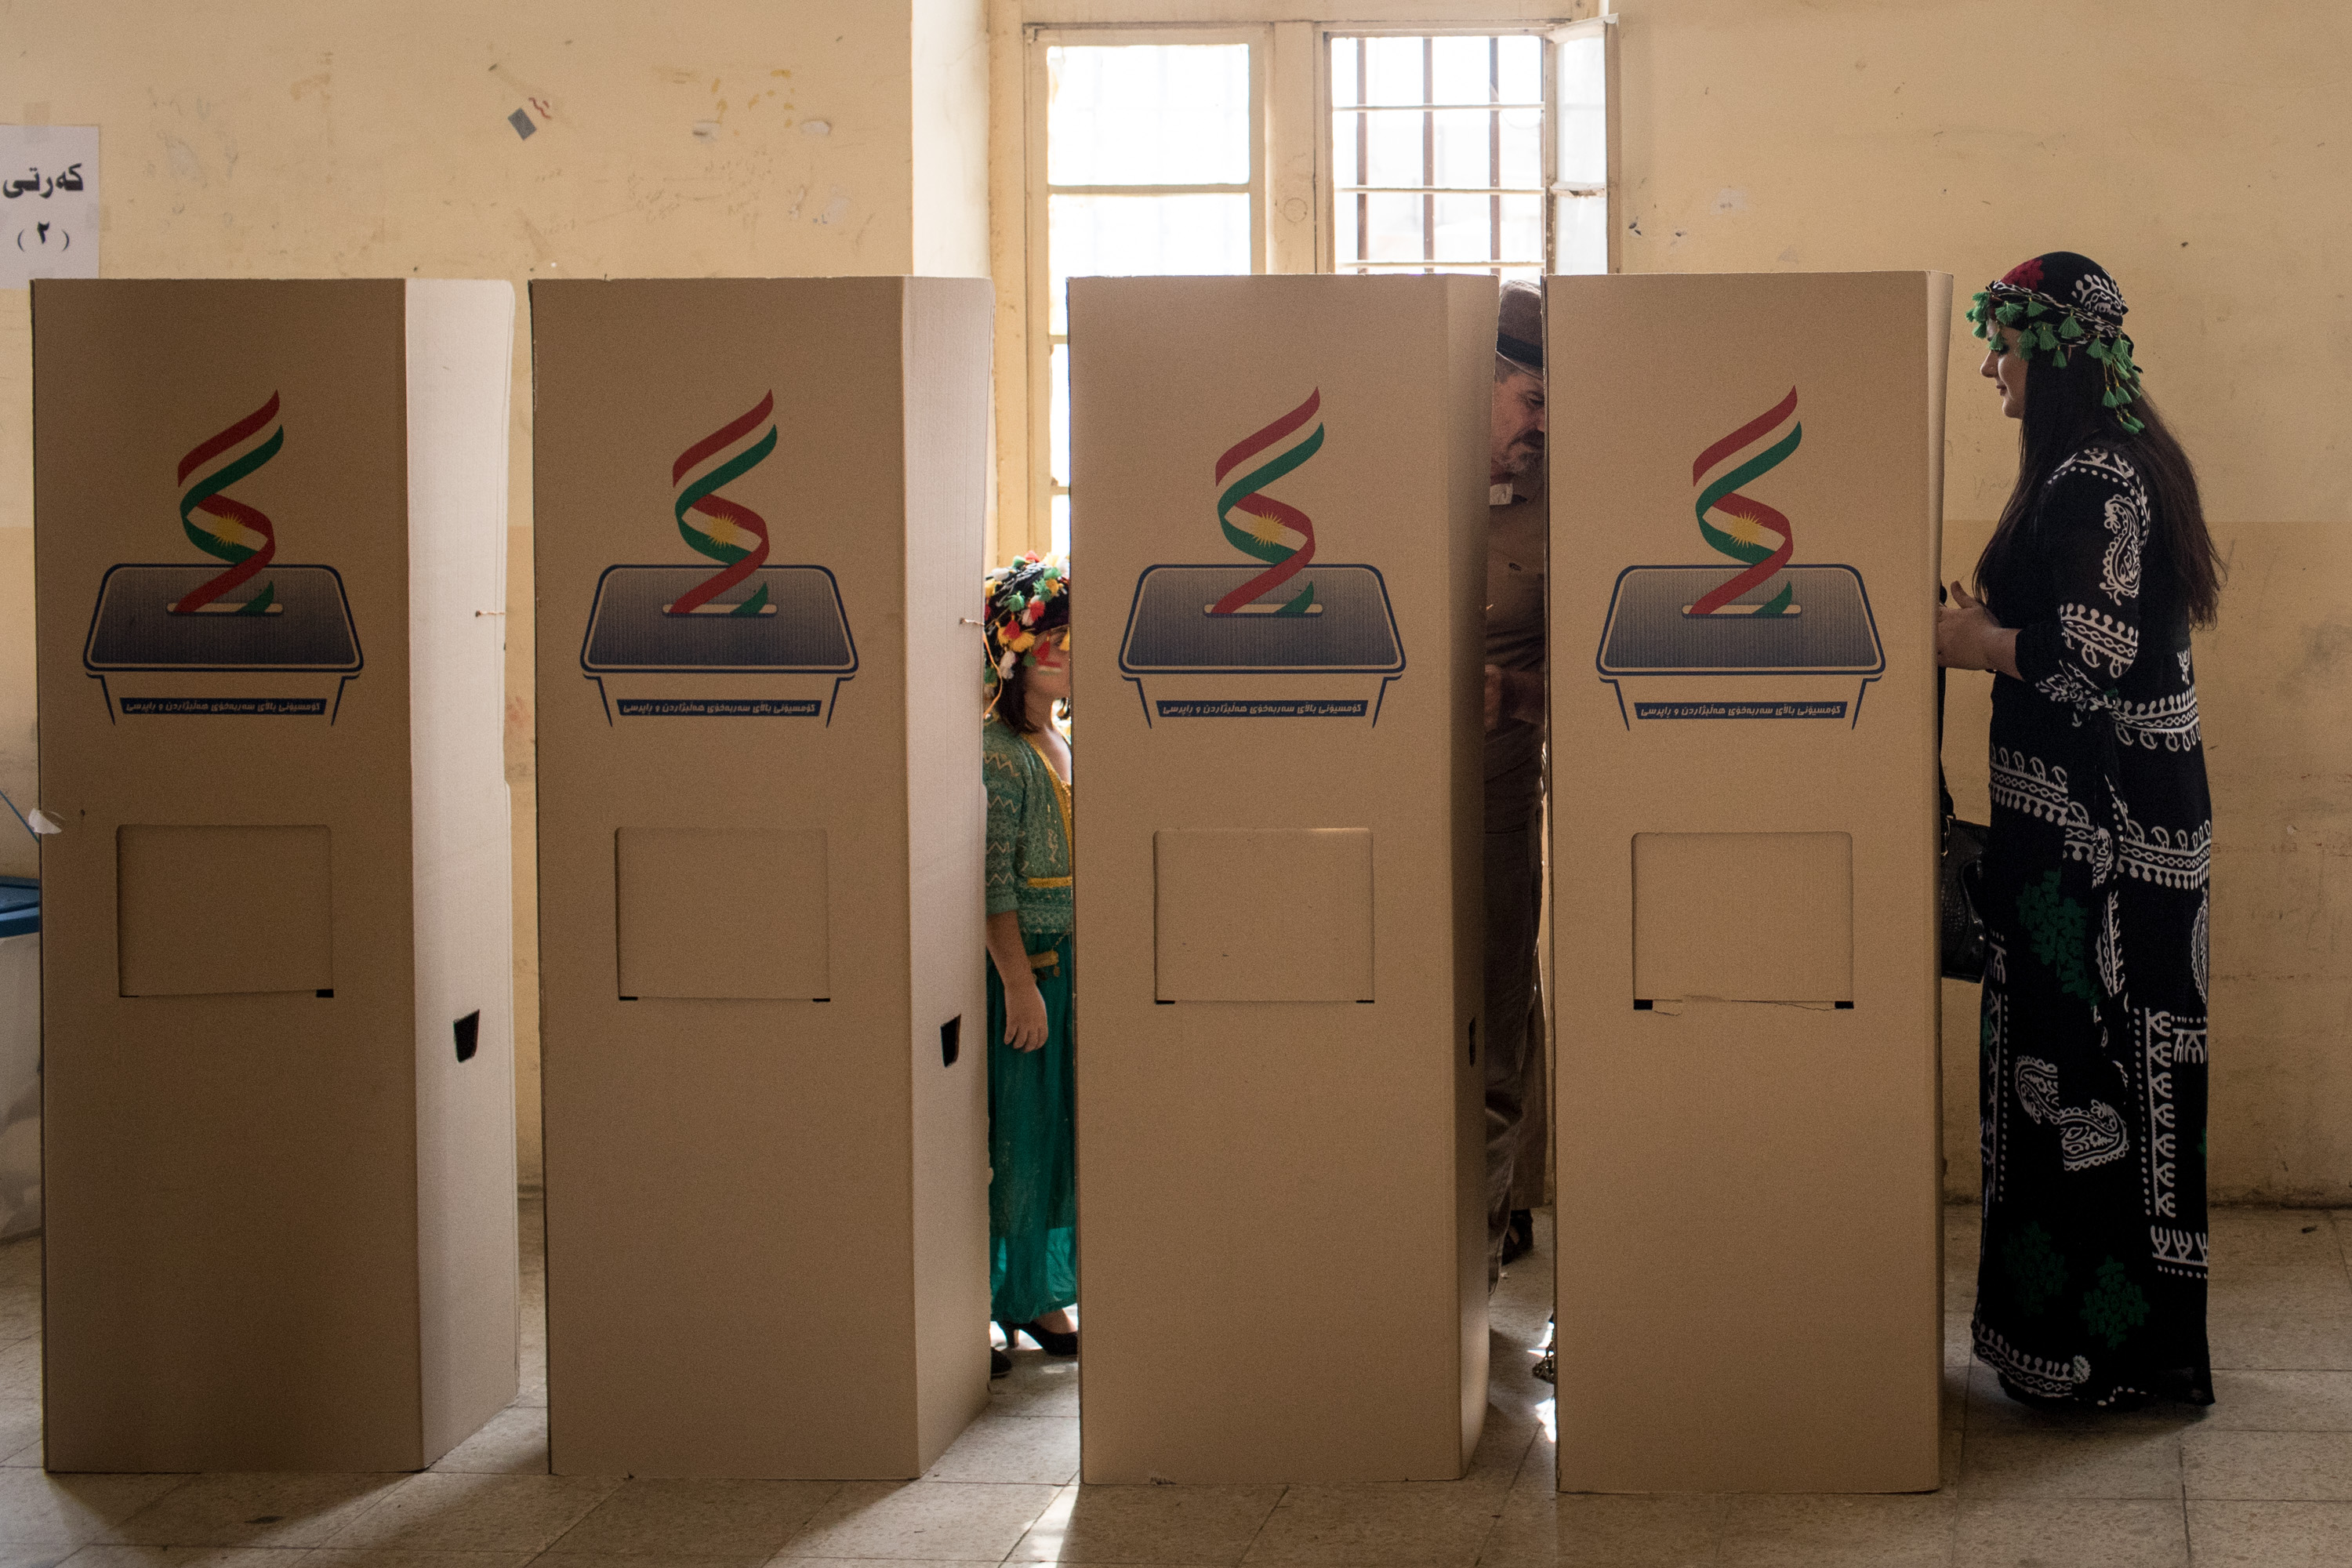 A woman waits to cast her referendum vote at a voting station on September 25, 2017 in Kirkuk, Iraq. Despite strong objection from neighboring countries and the Iraqi government. Some five million Kurds took to the polls today across three provinces in the historic independence referendum. (Photo by Chris McGrath/Getty Images)